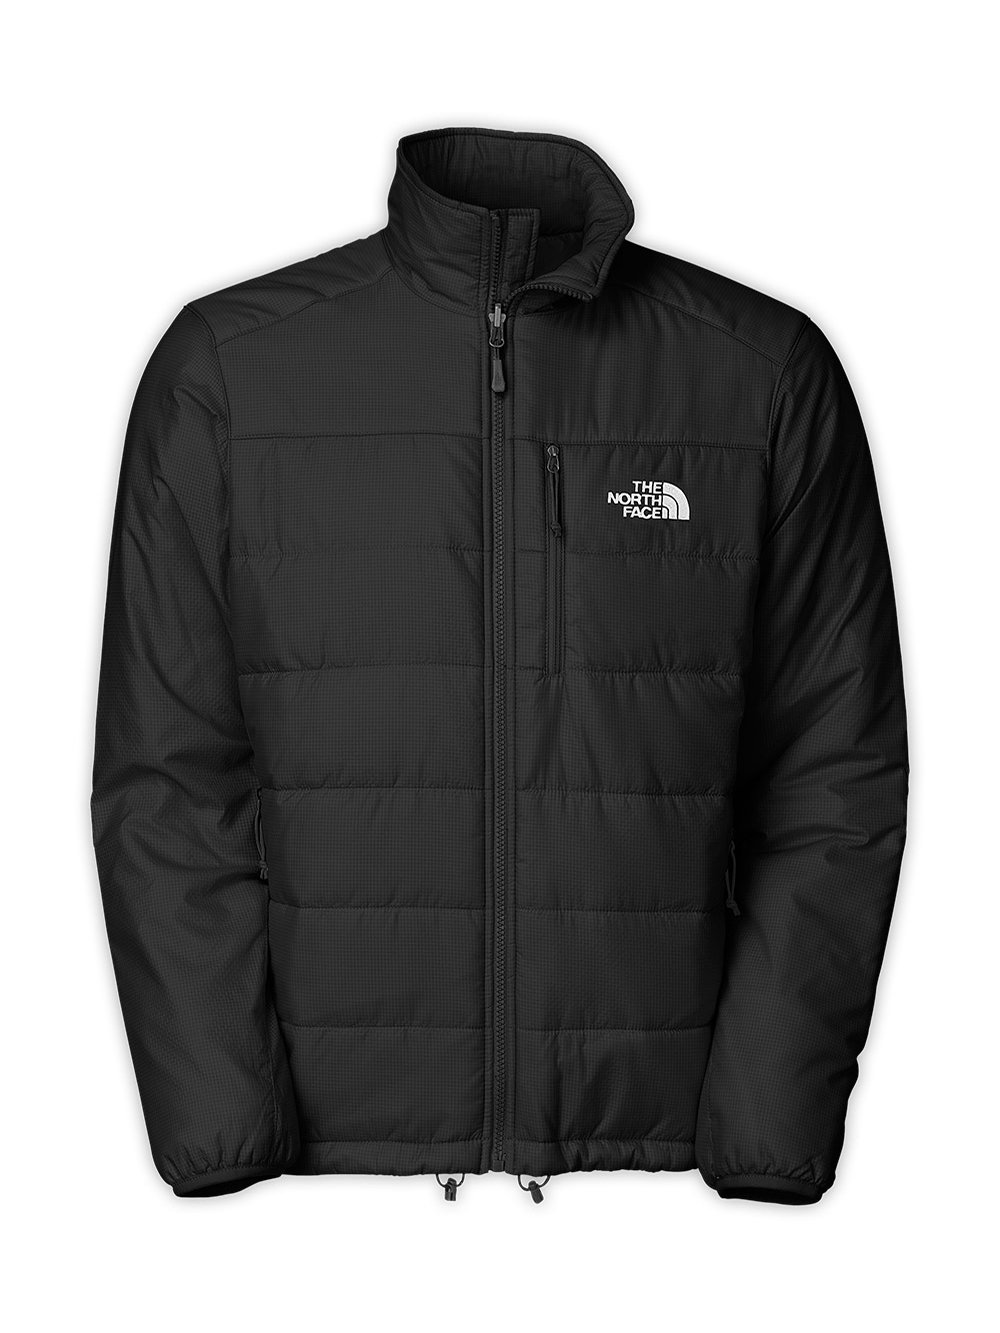 The North Face Big Girls' Kira Triclimate Jacket - tnf black, xl/18